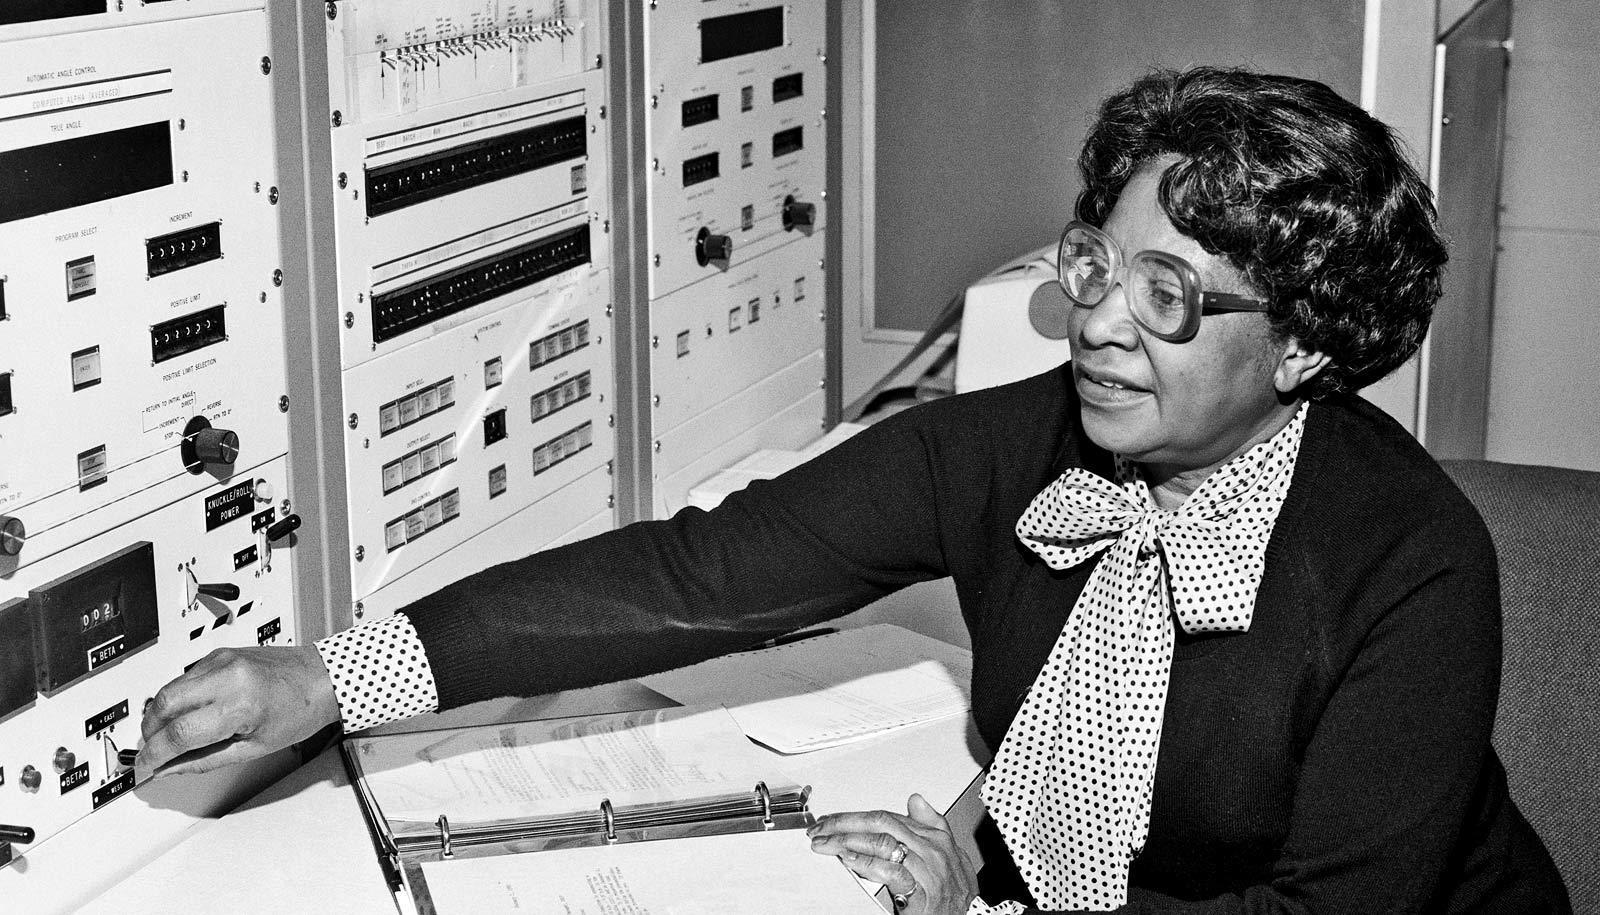 Mary Jackson working at NASA